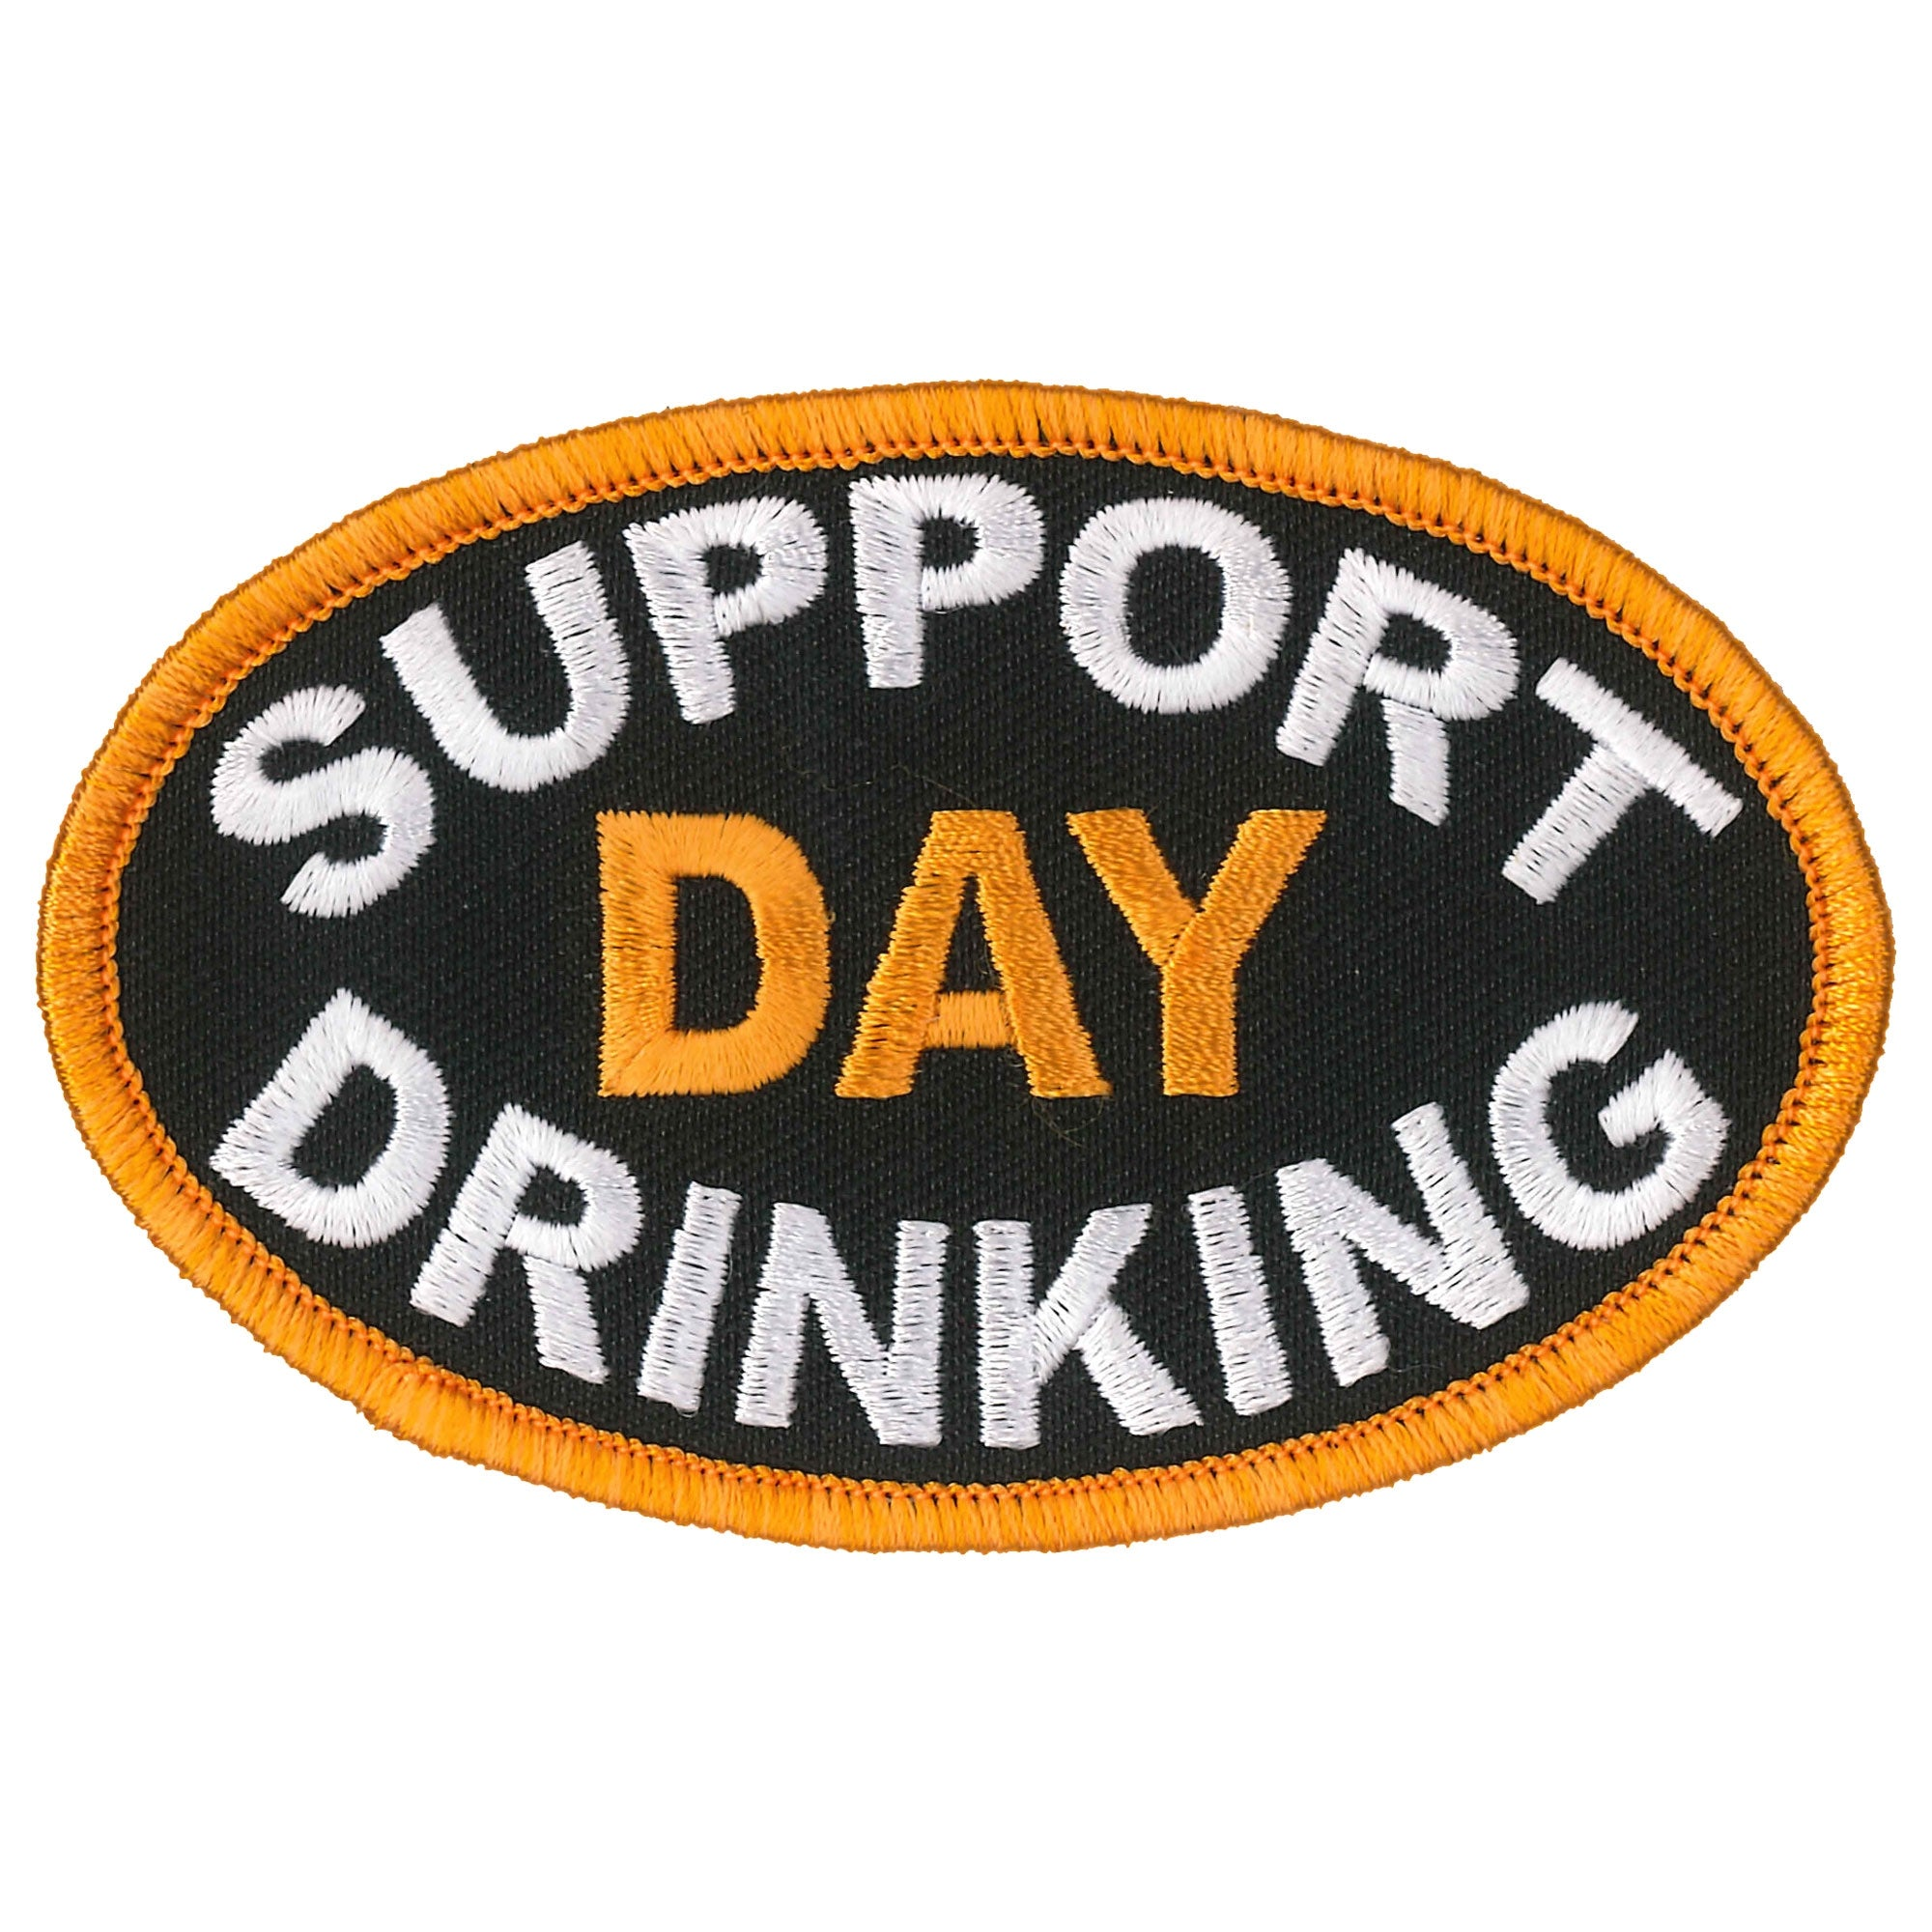 Hot Leathers Support Day Drinking Patch